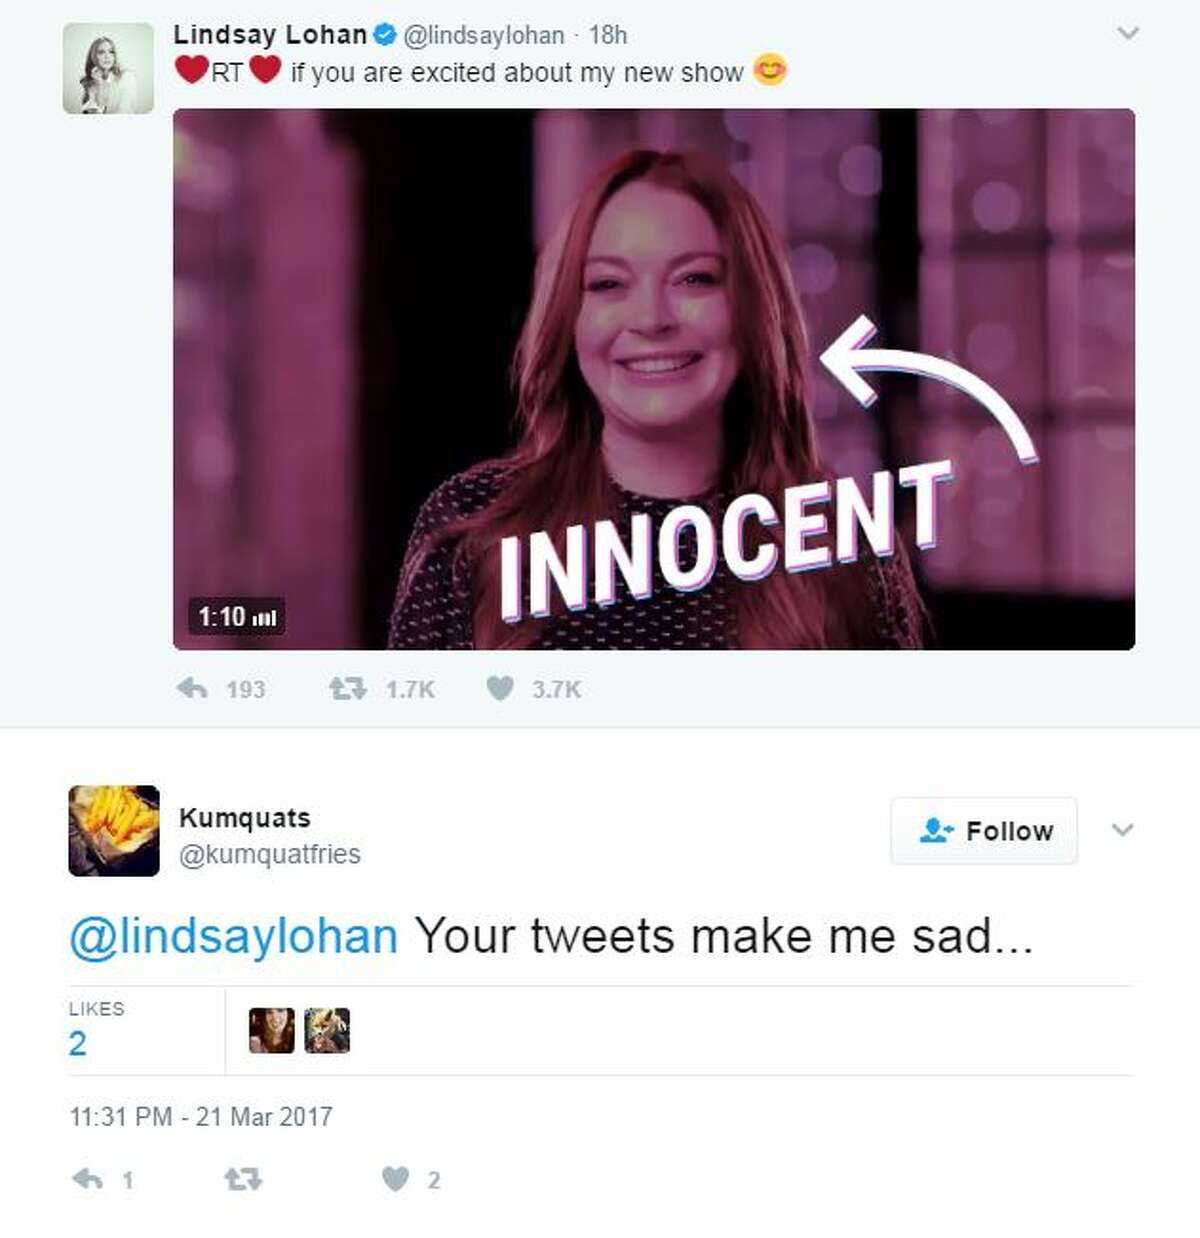 Lindsay Lohan got roasted on twitter after sharing a tweet about her new show.